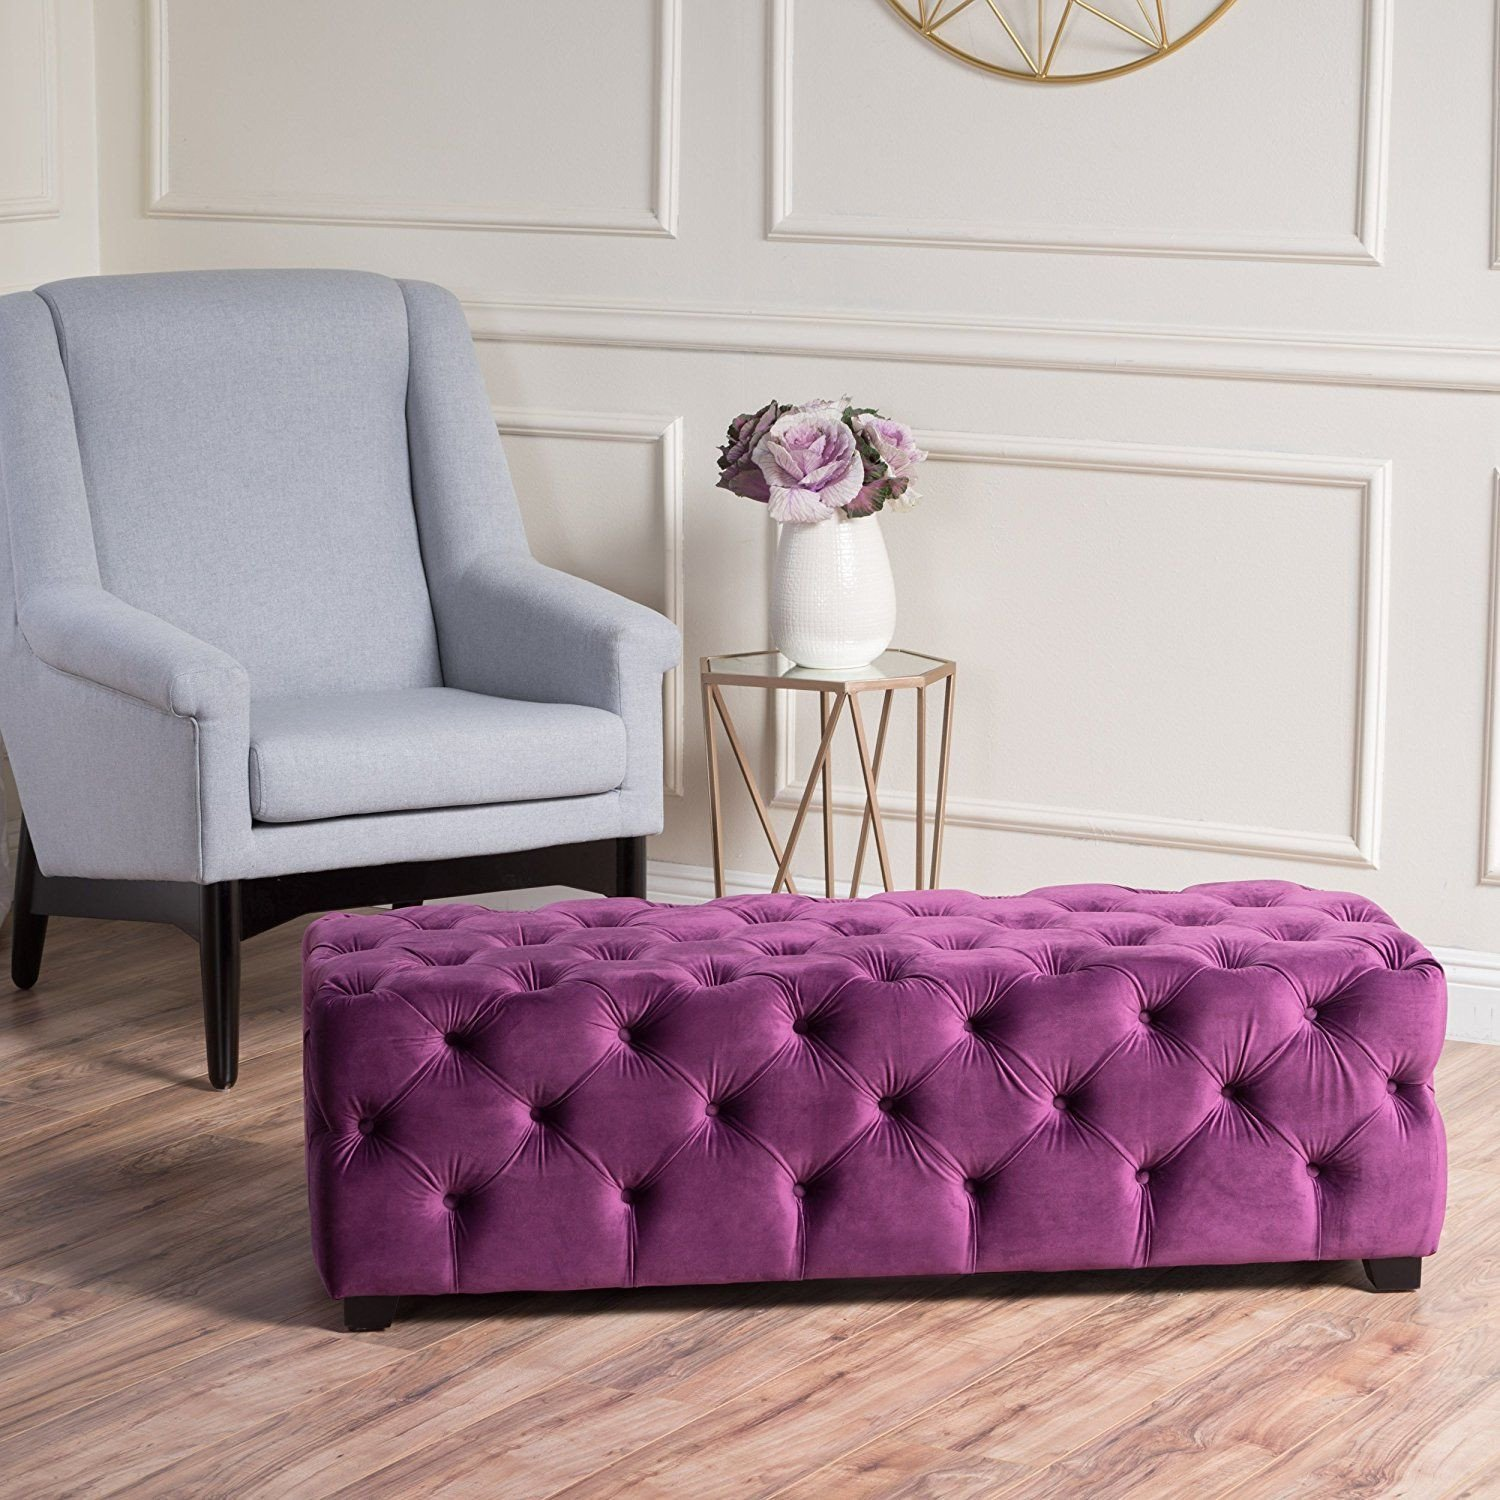 Fabric Bench for Bedroom Luxury Provence Purple Tufted Velvet Fabric Rectangle Ottoman Bench